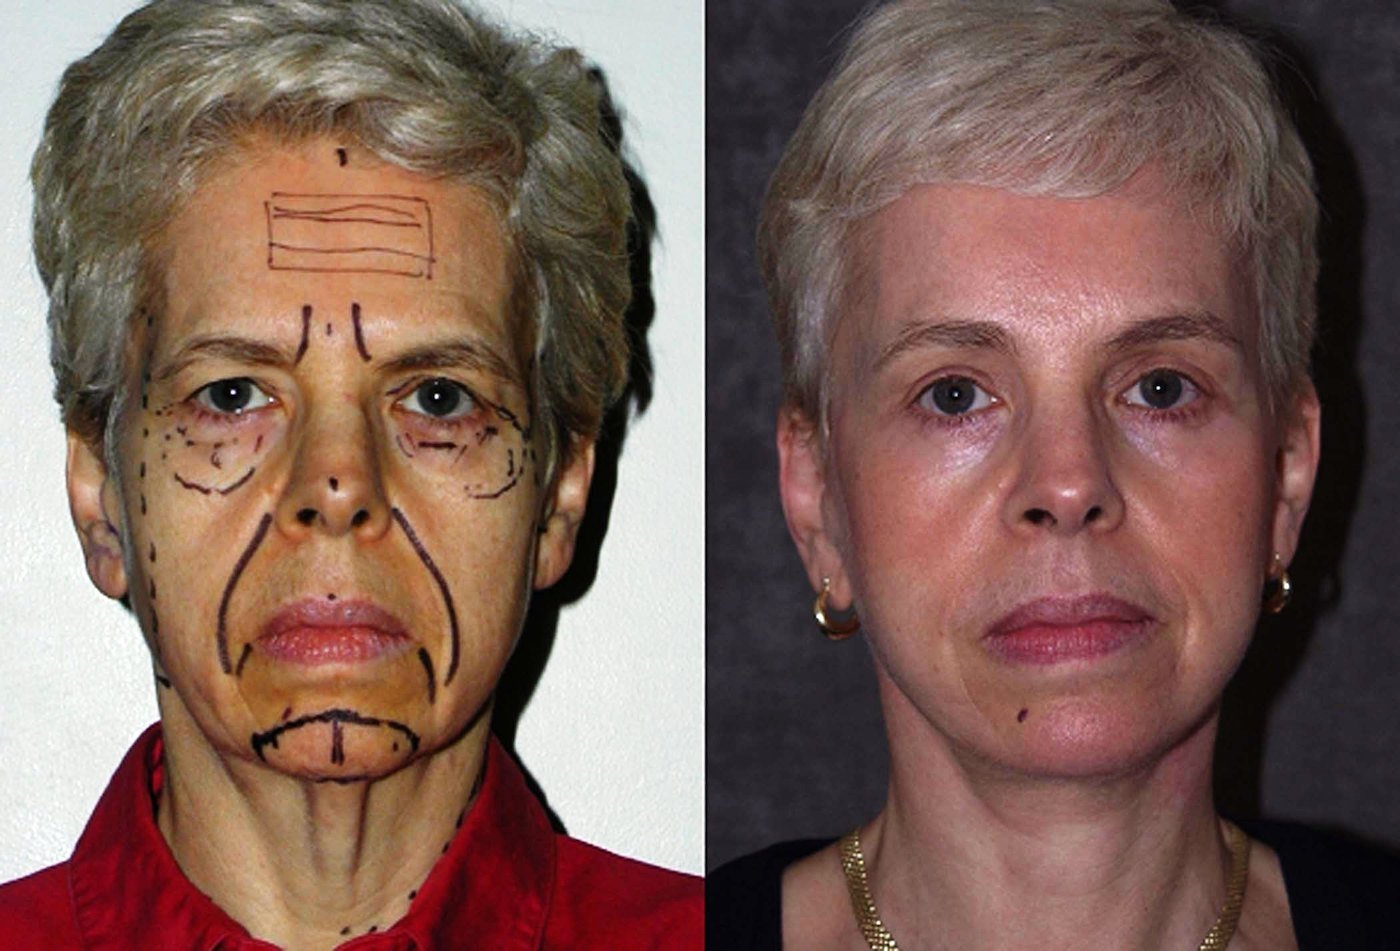 56-year-old, facelift, submental platysmaplasty, endobrow, upper lower eyelids, chin augmentation, 2 years after surgery, front view